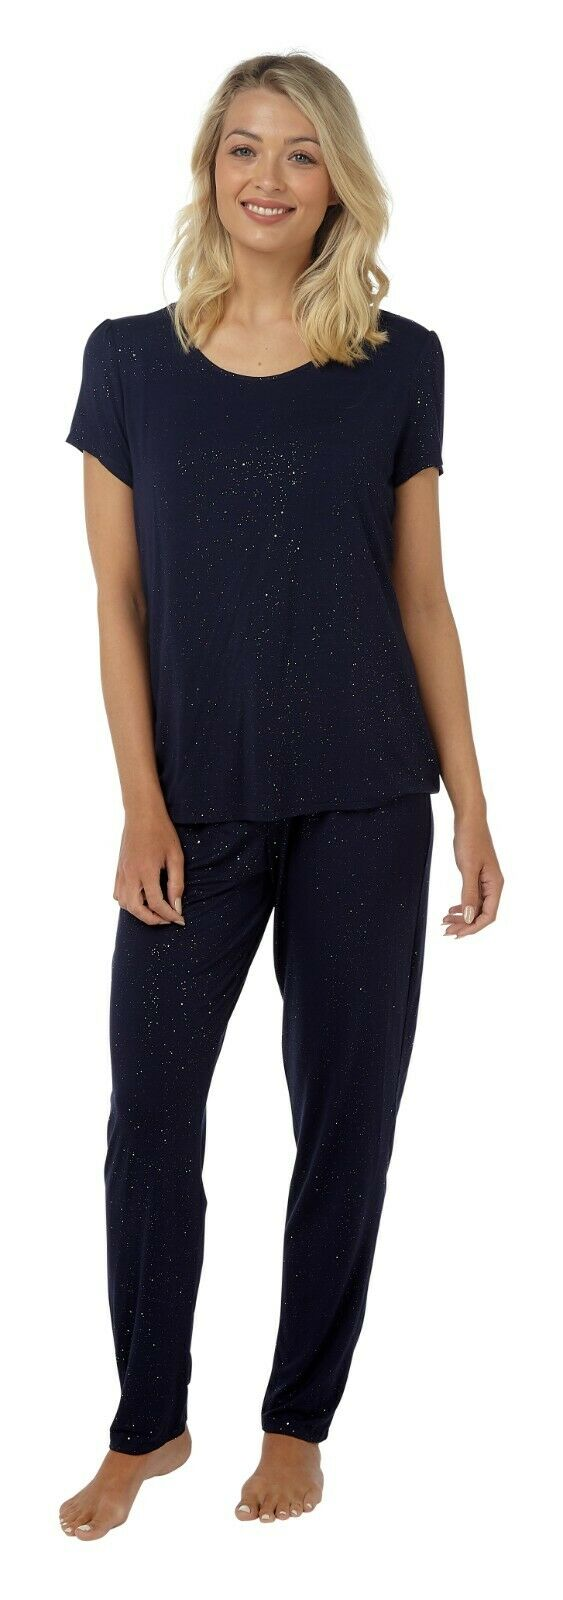 Navy Blue And Sparkles Top and Trouser PJ Set